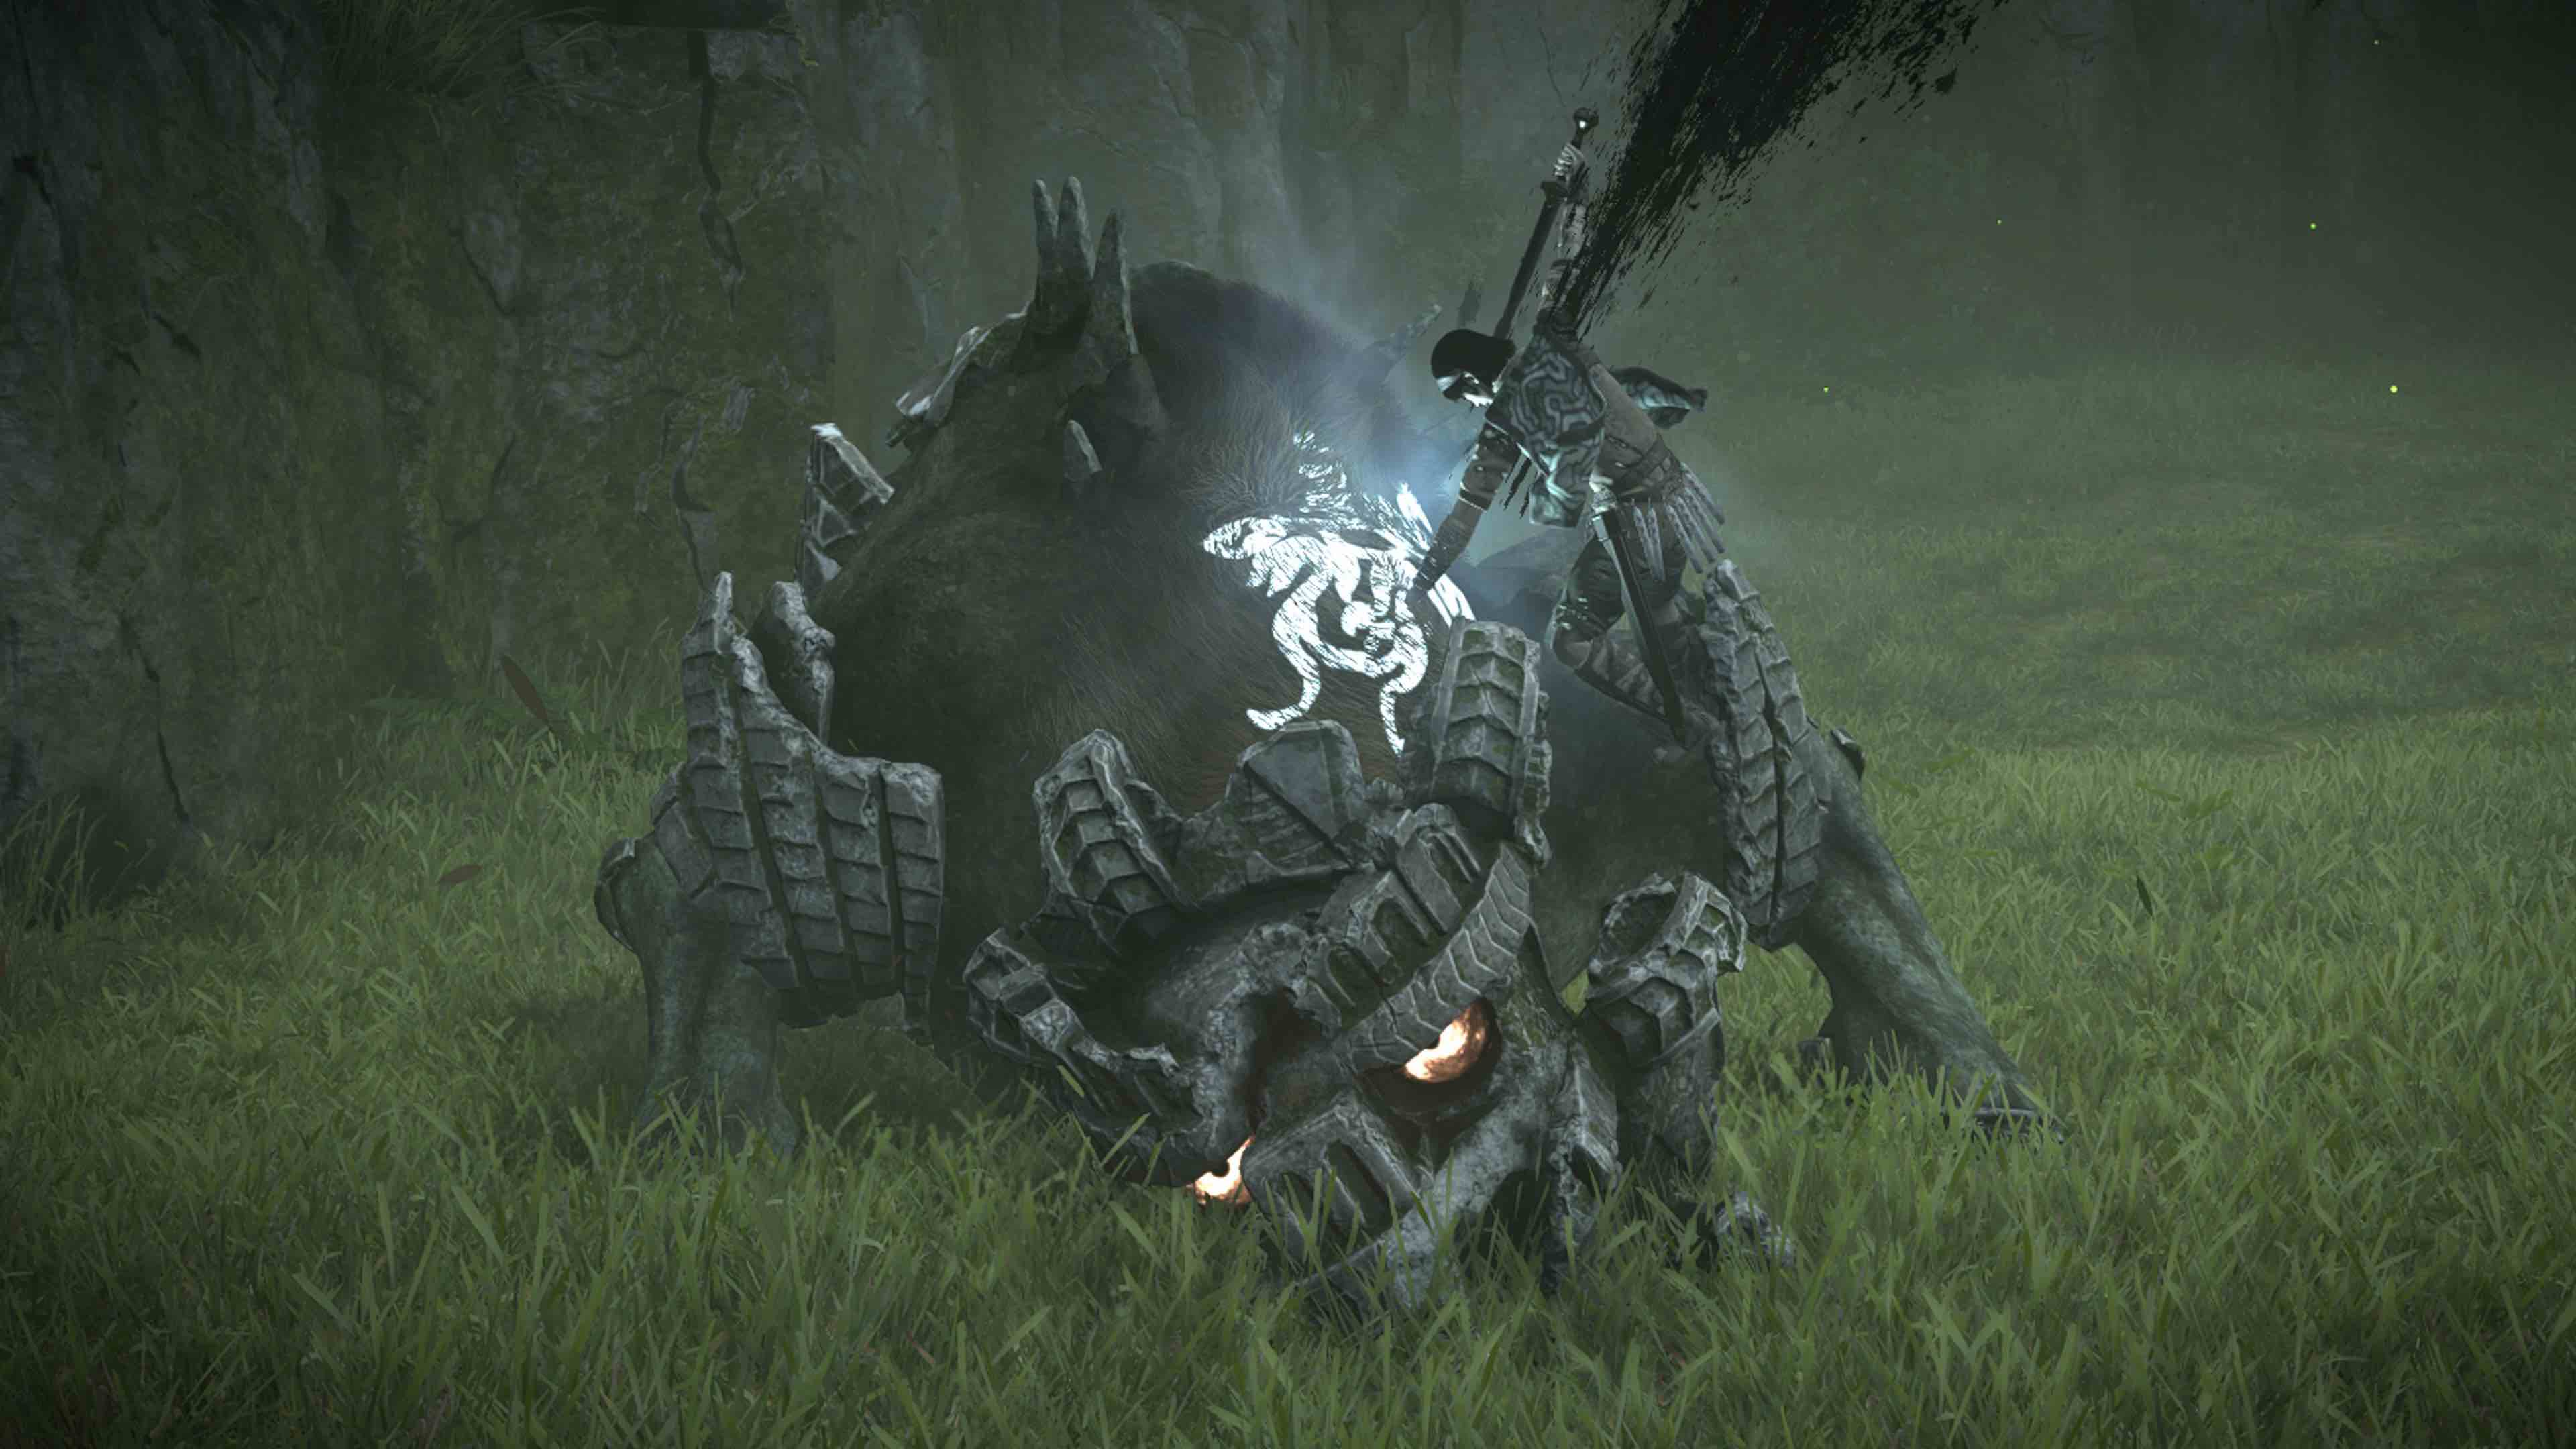 Shadow_of_the_Colossus_Analisis_2